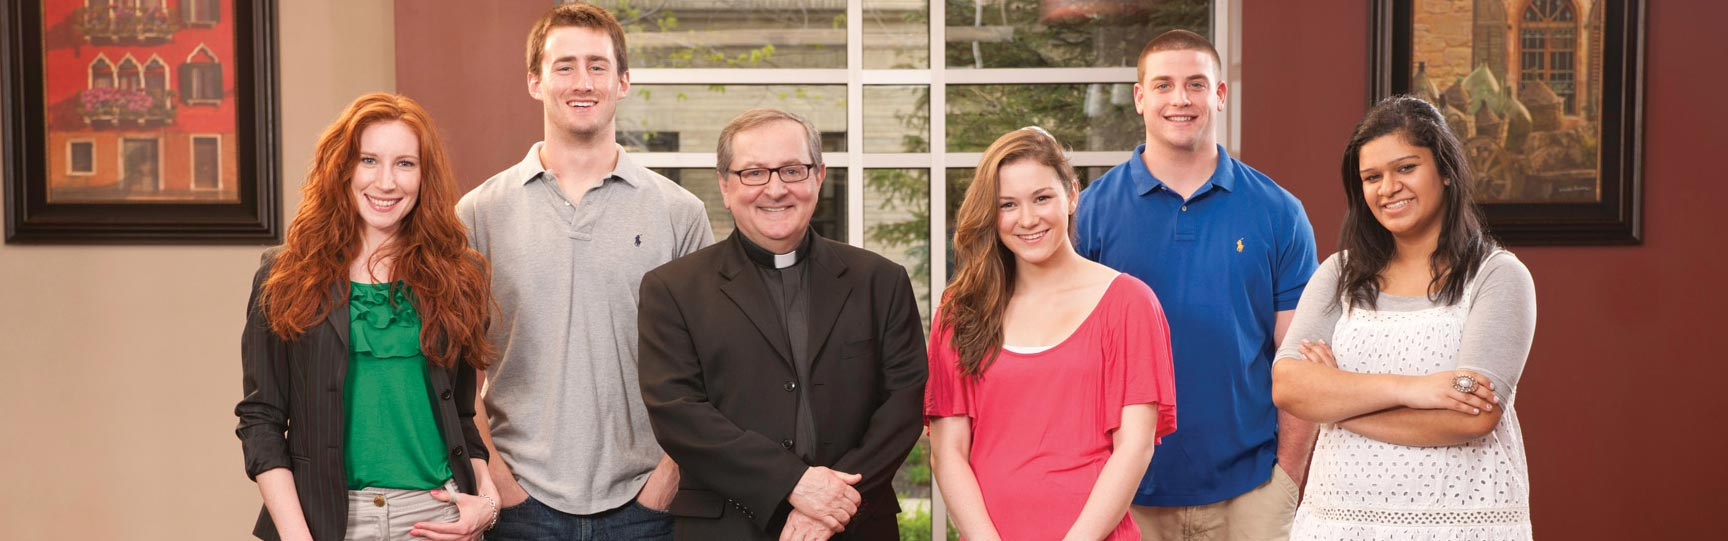 Fr Ryan with students